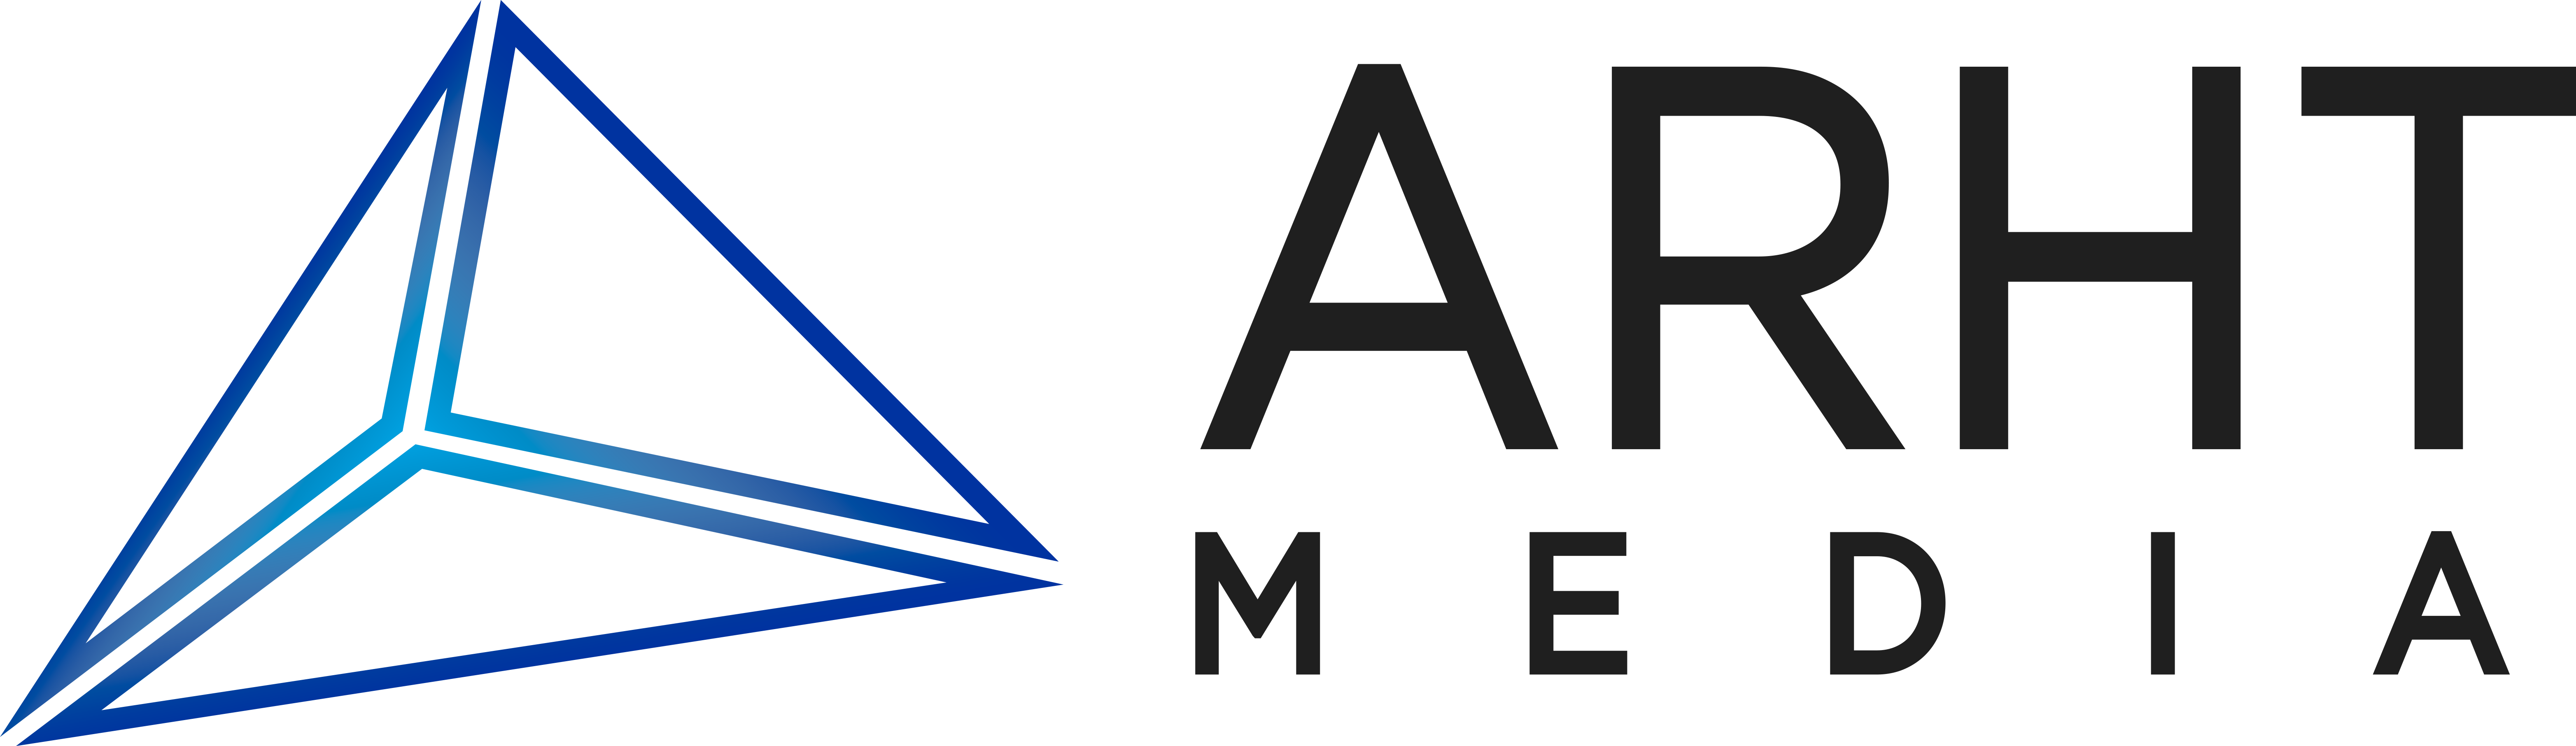 ARHT Media Announces First Order for 10 ARHT Engine Servers from Almo Professional A/V